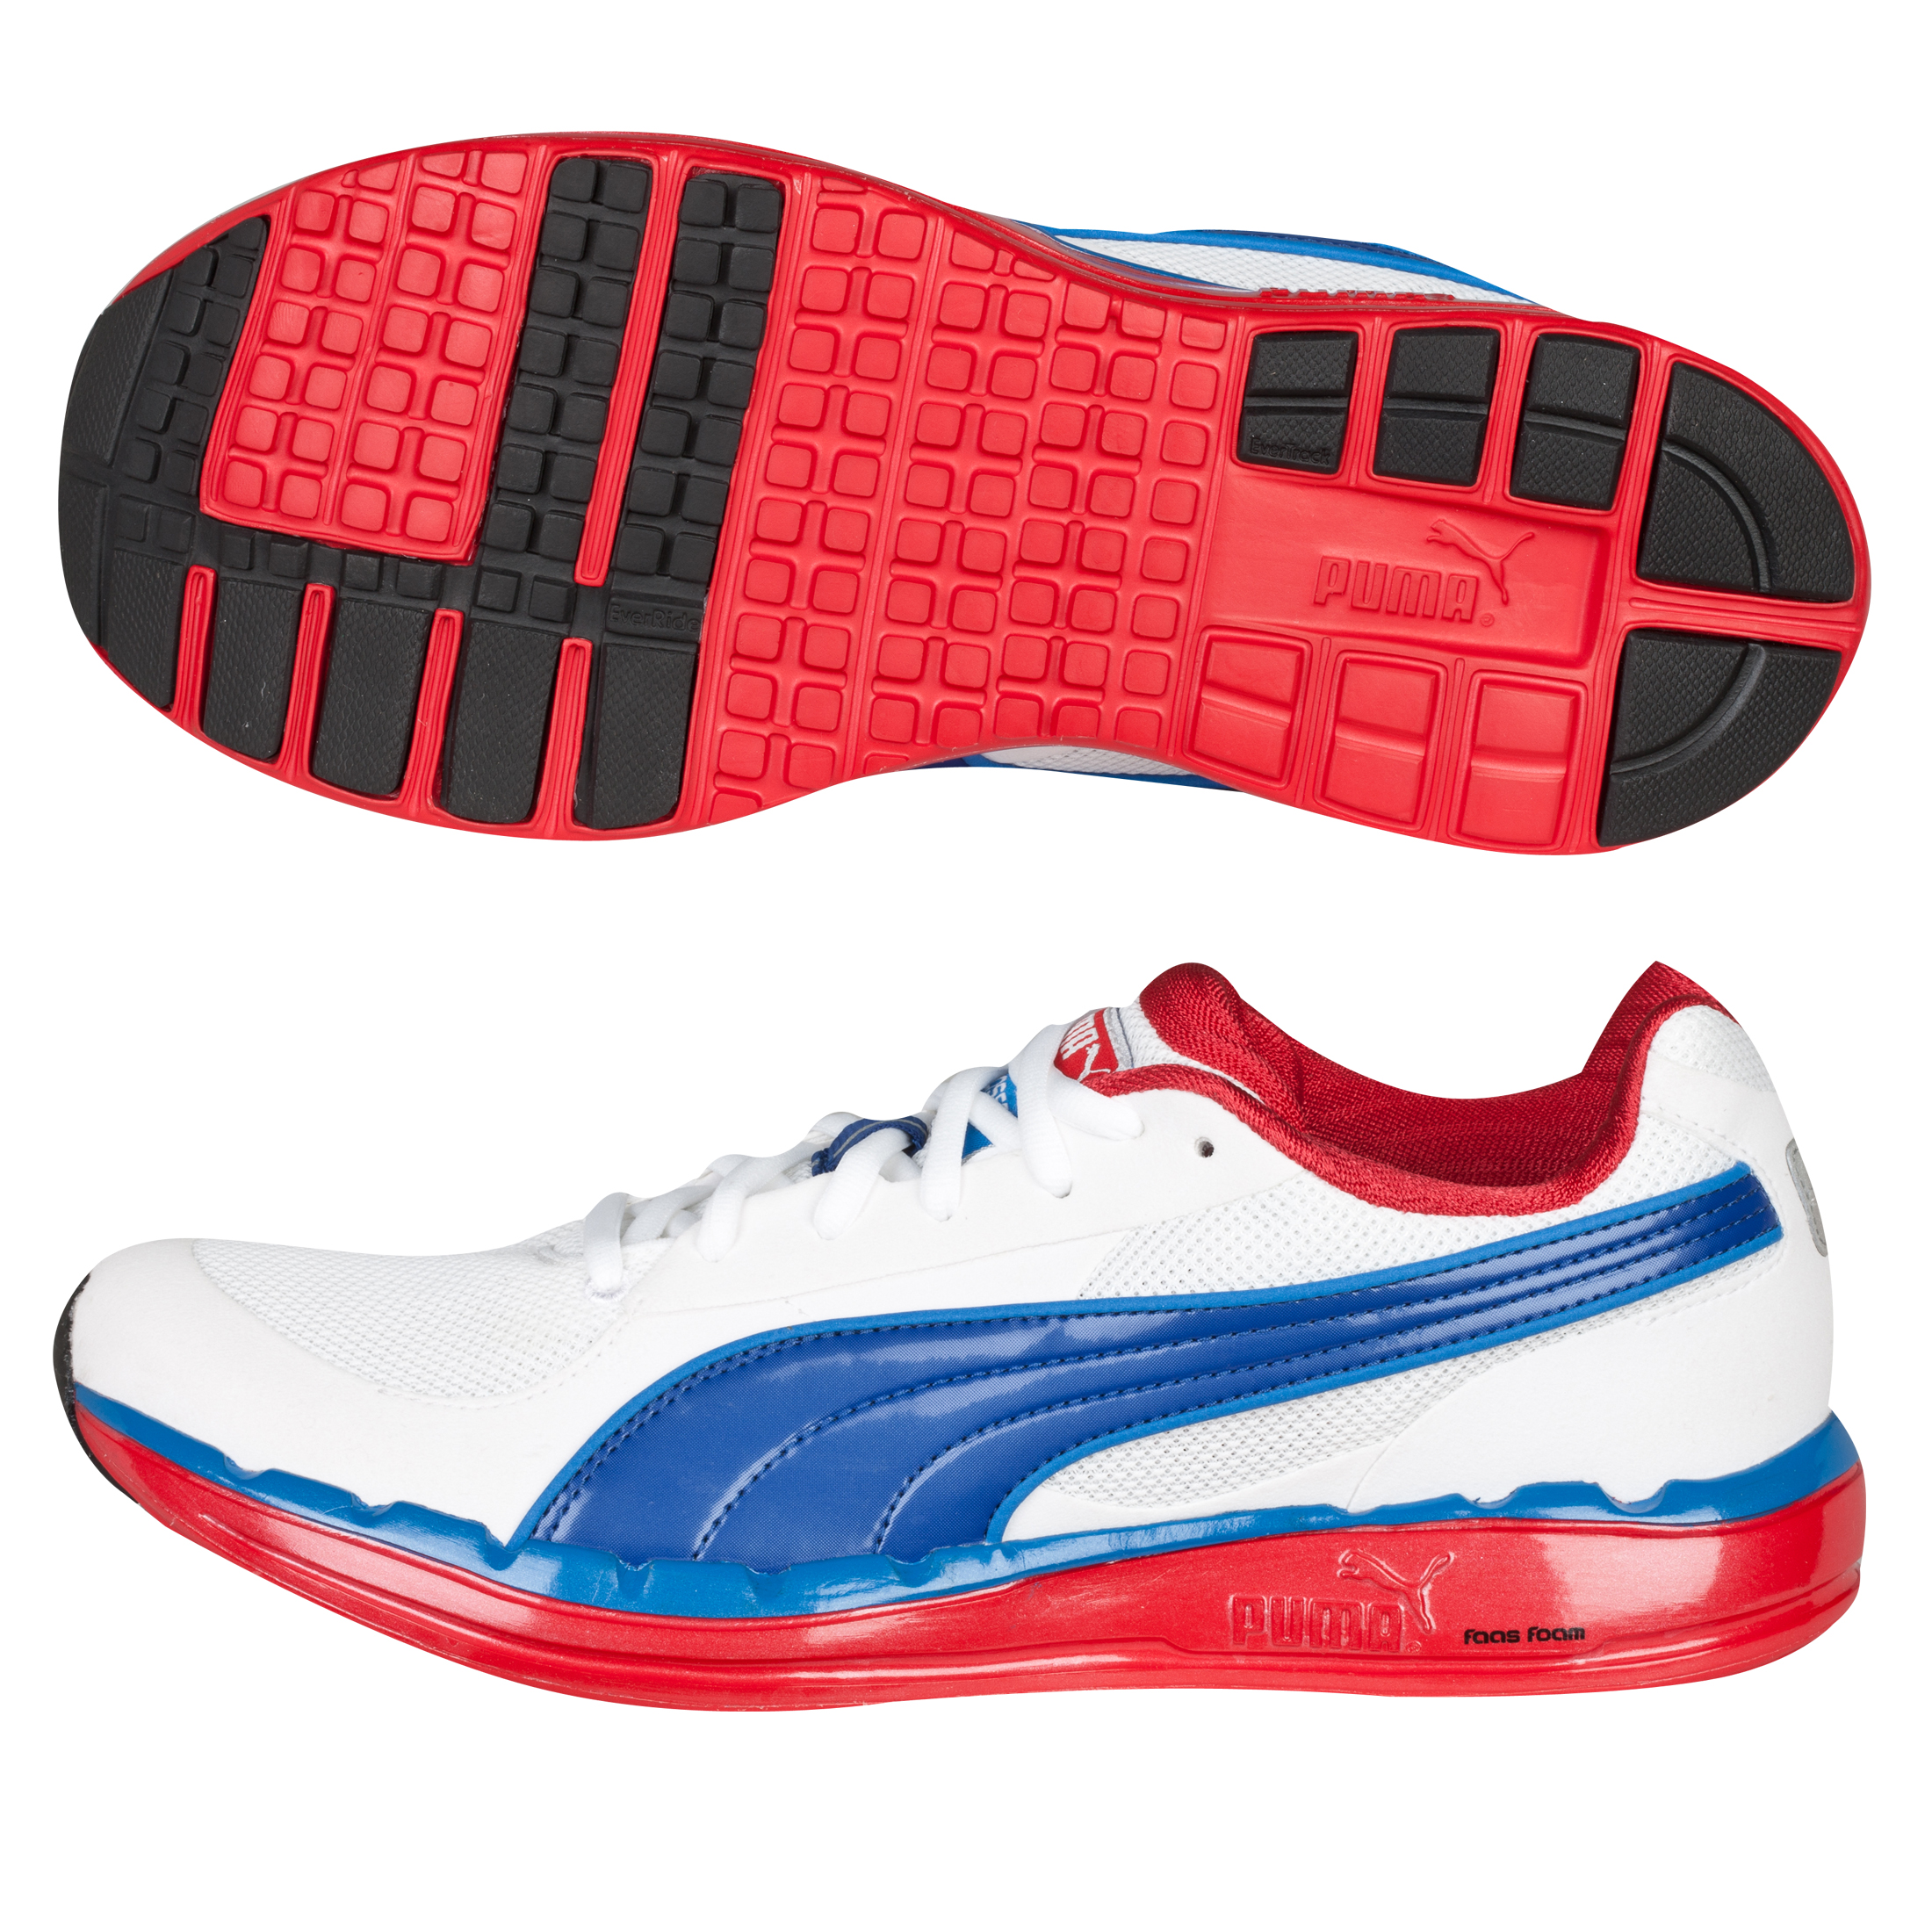 Puma Faas 500 Running Trainers - White/Ribbon Red/Limoges